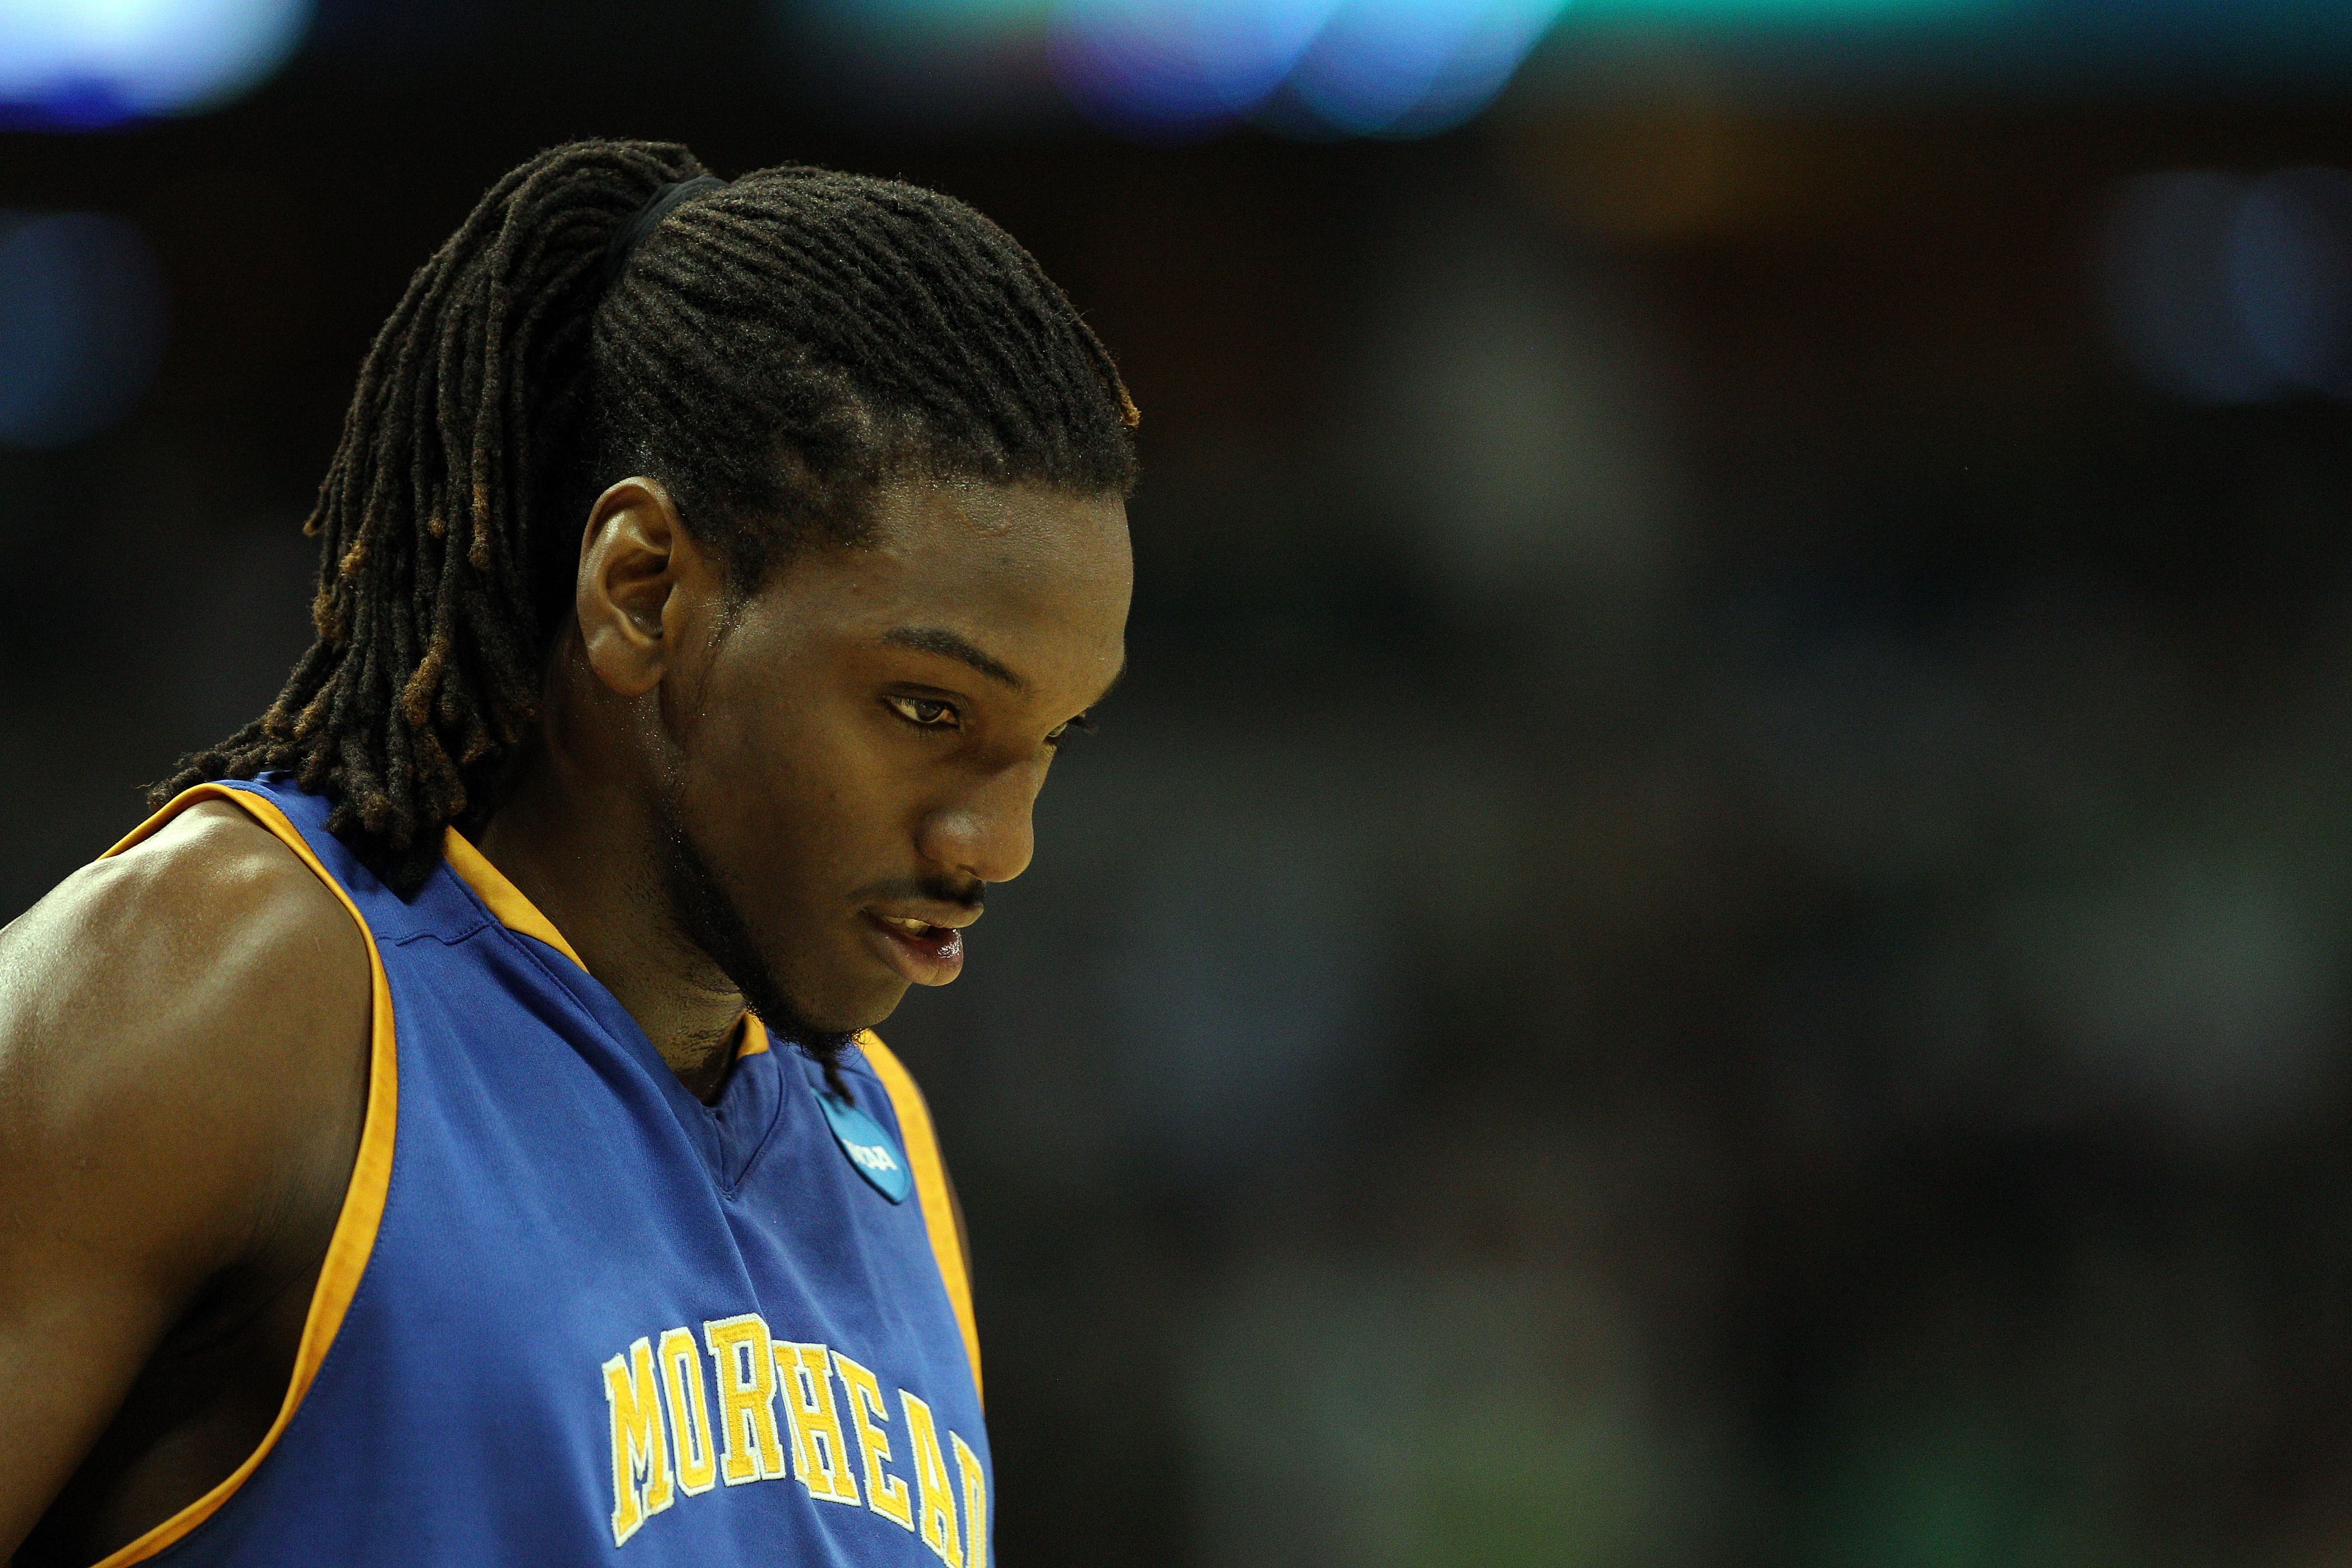 DENVER, CO - MARCH 17:  Kenneth Faried #35 of the Morehead State Eagles looks on during the second round of the 2011 NCAA men's basketball tournament at Pepsi Center on March 17, 2011 in Denver, Colorado.  (Photo by Justin Edmonds/Getty Images)